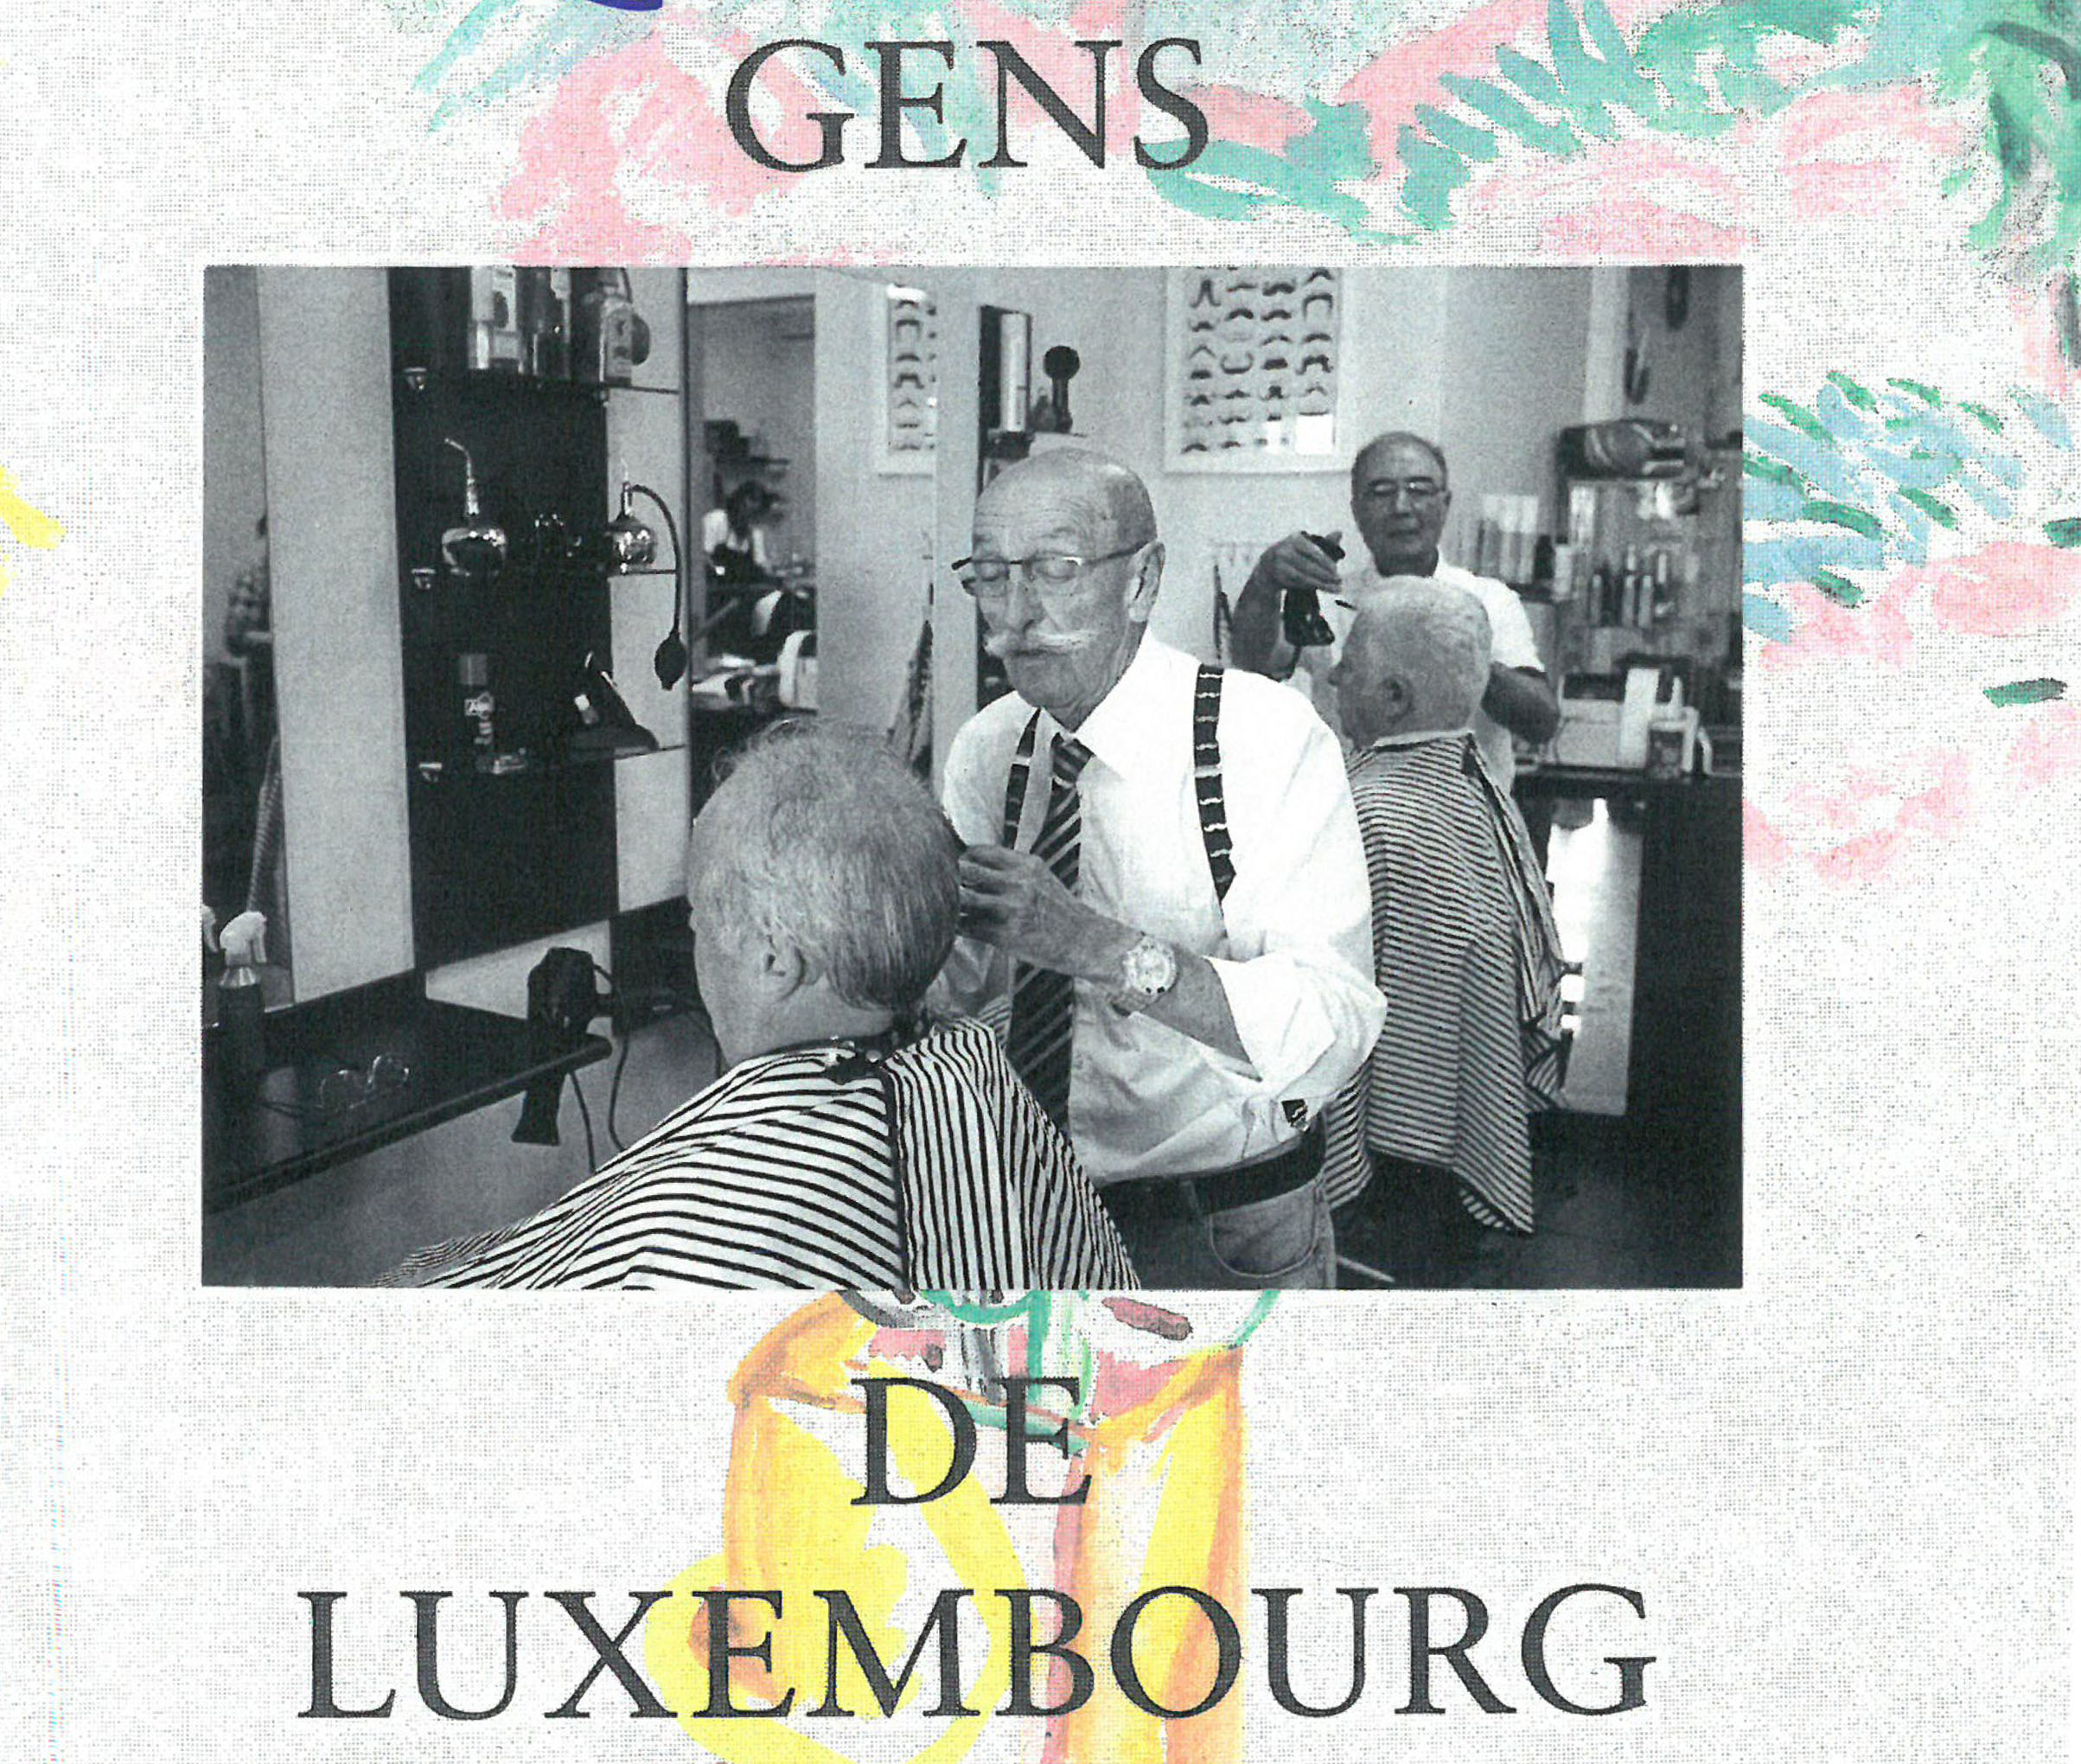 People of Luxembourg.